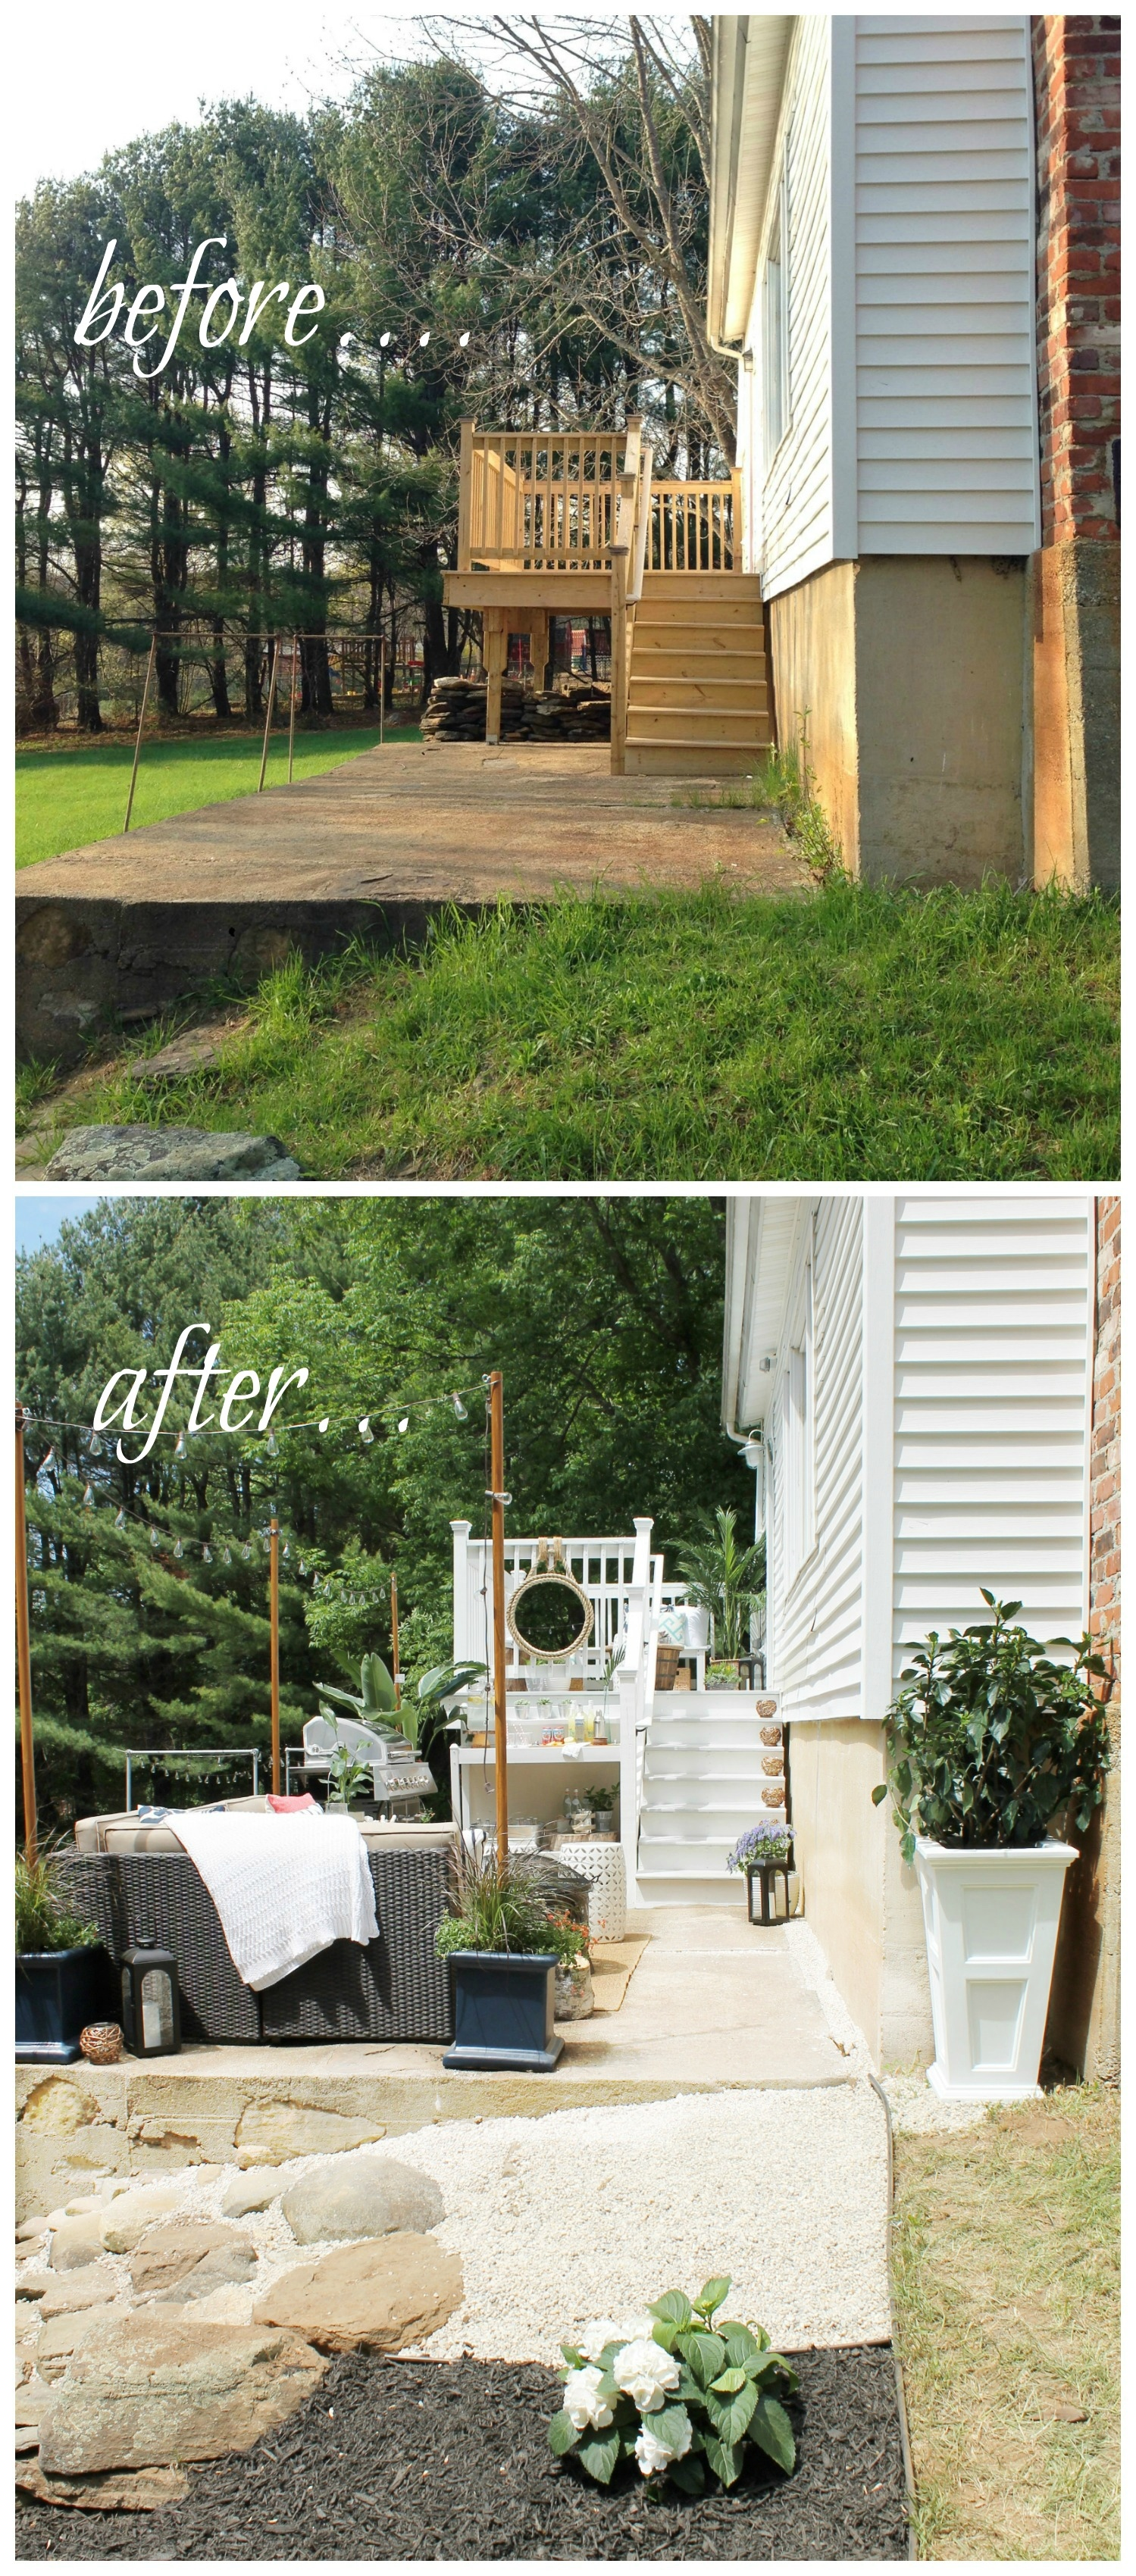 Lowe's Spring Makeover-Outdoor Oasis - City Farmhouse - photo#25